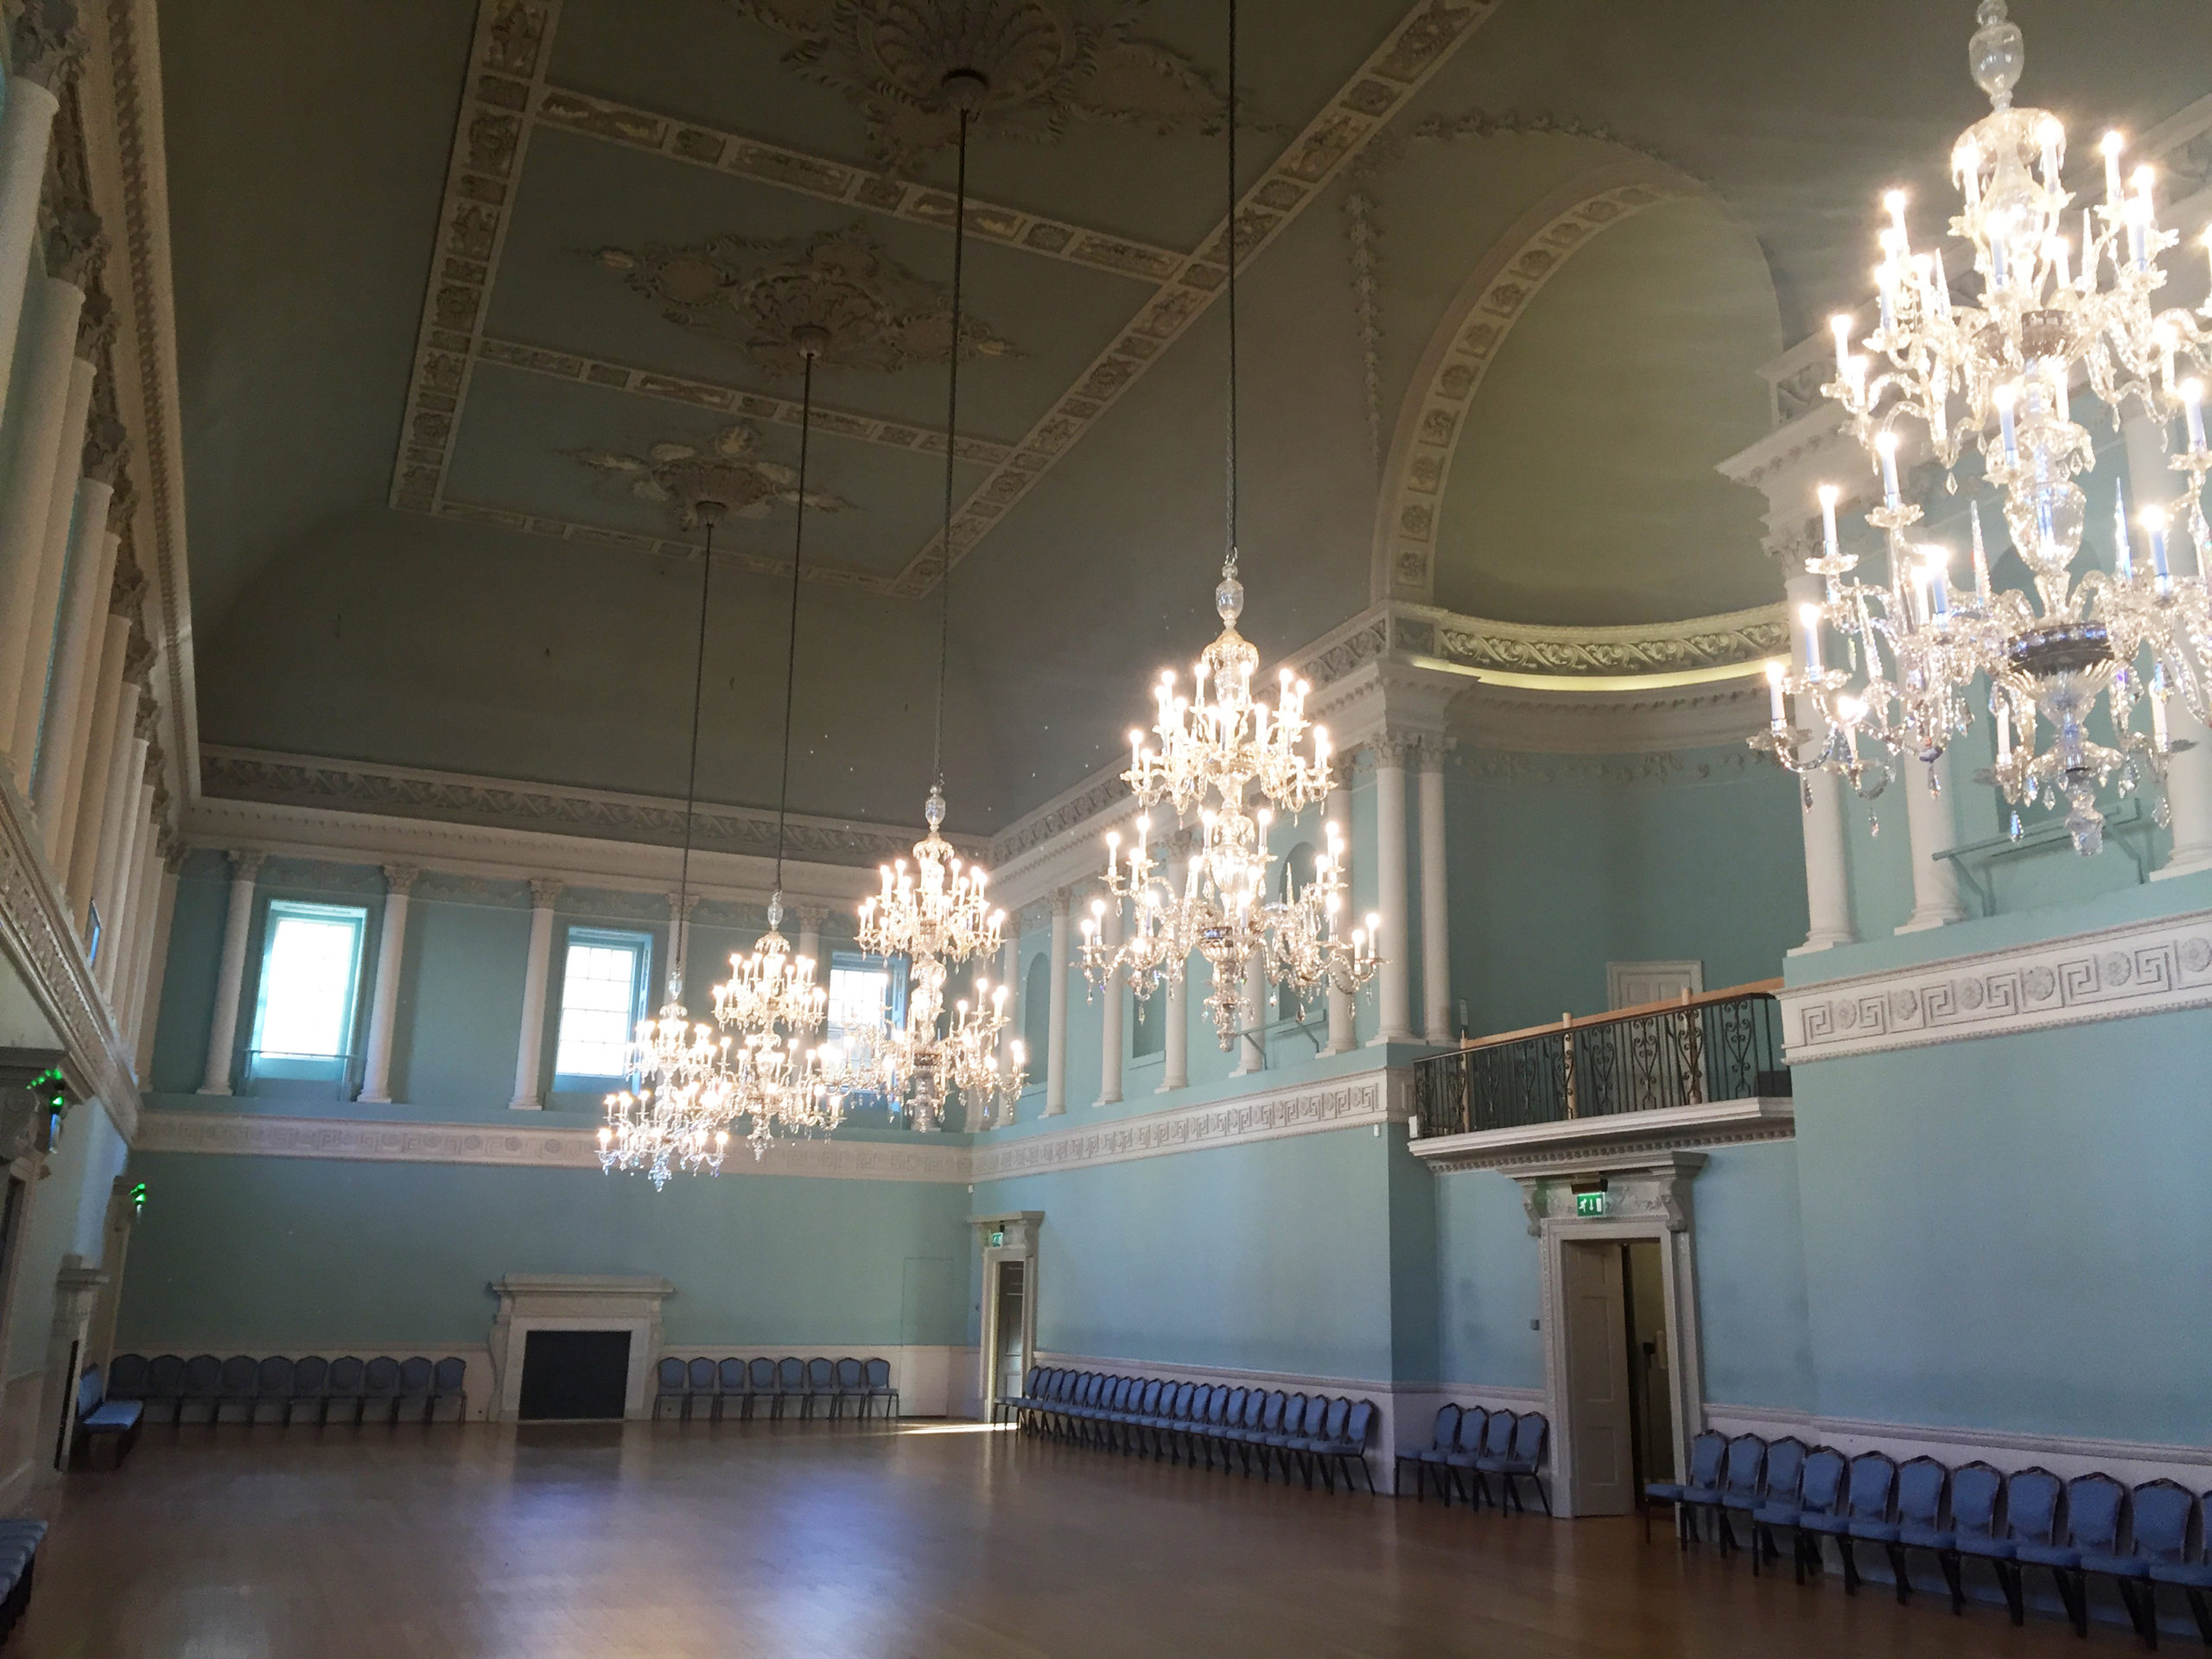 The Bath Assembly Room